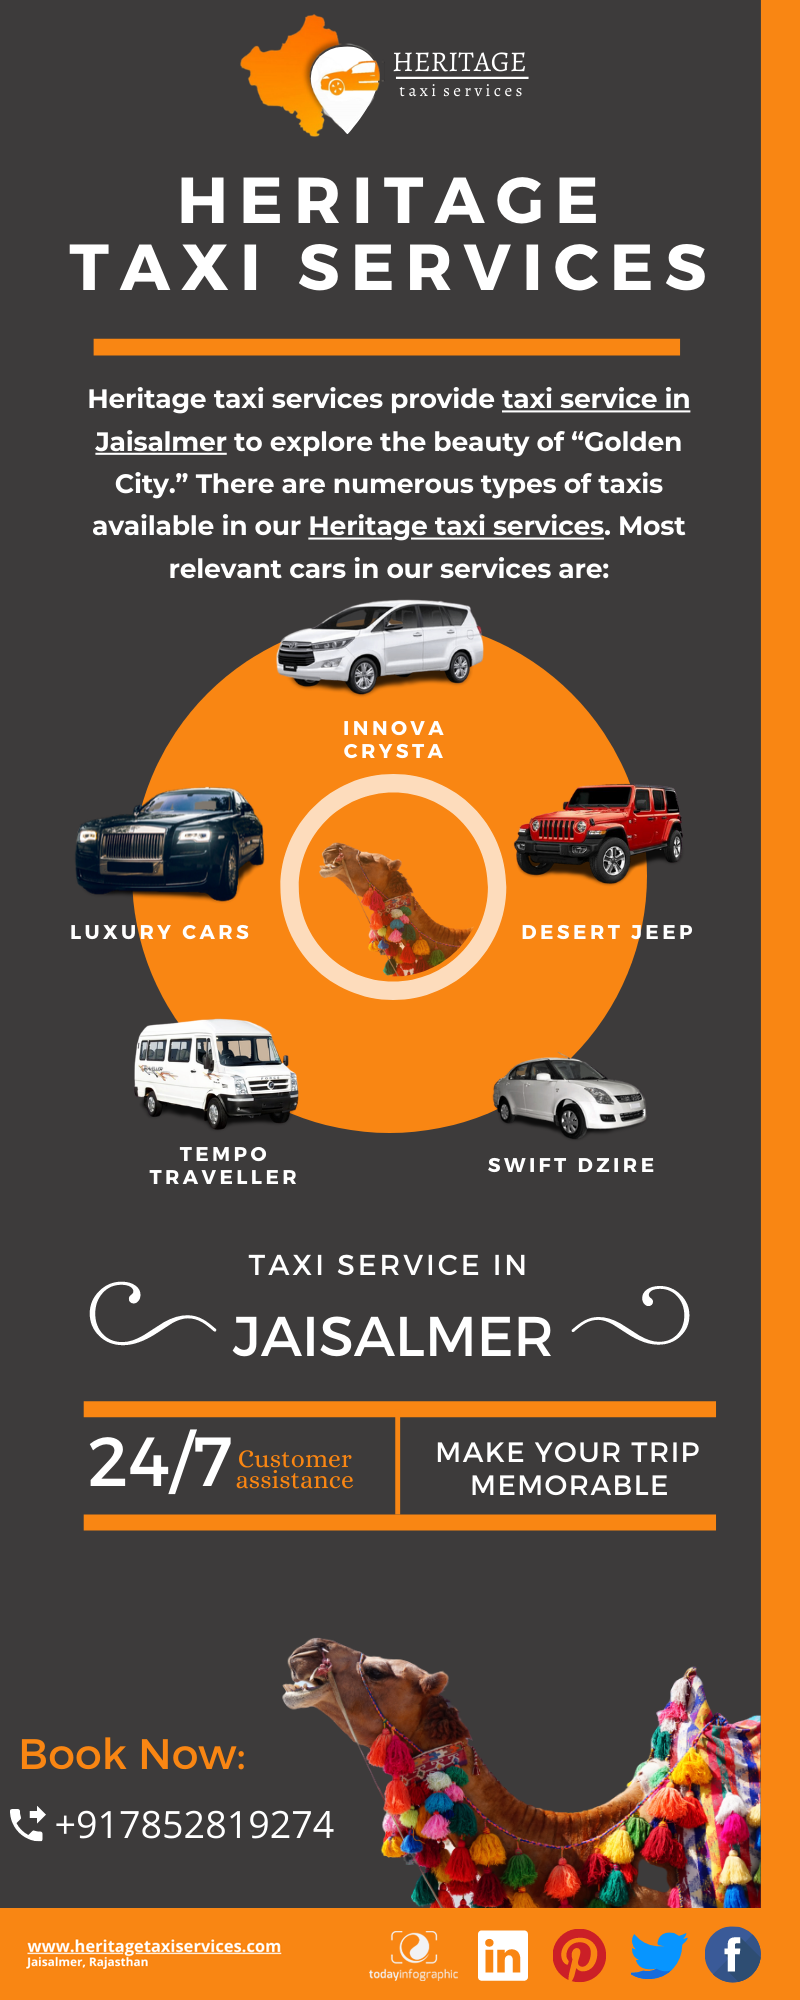 taxi-service-in-jaisalmer-heritage-taxi-services-png